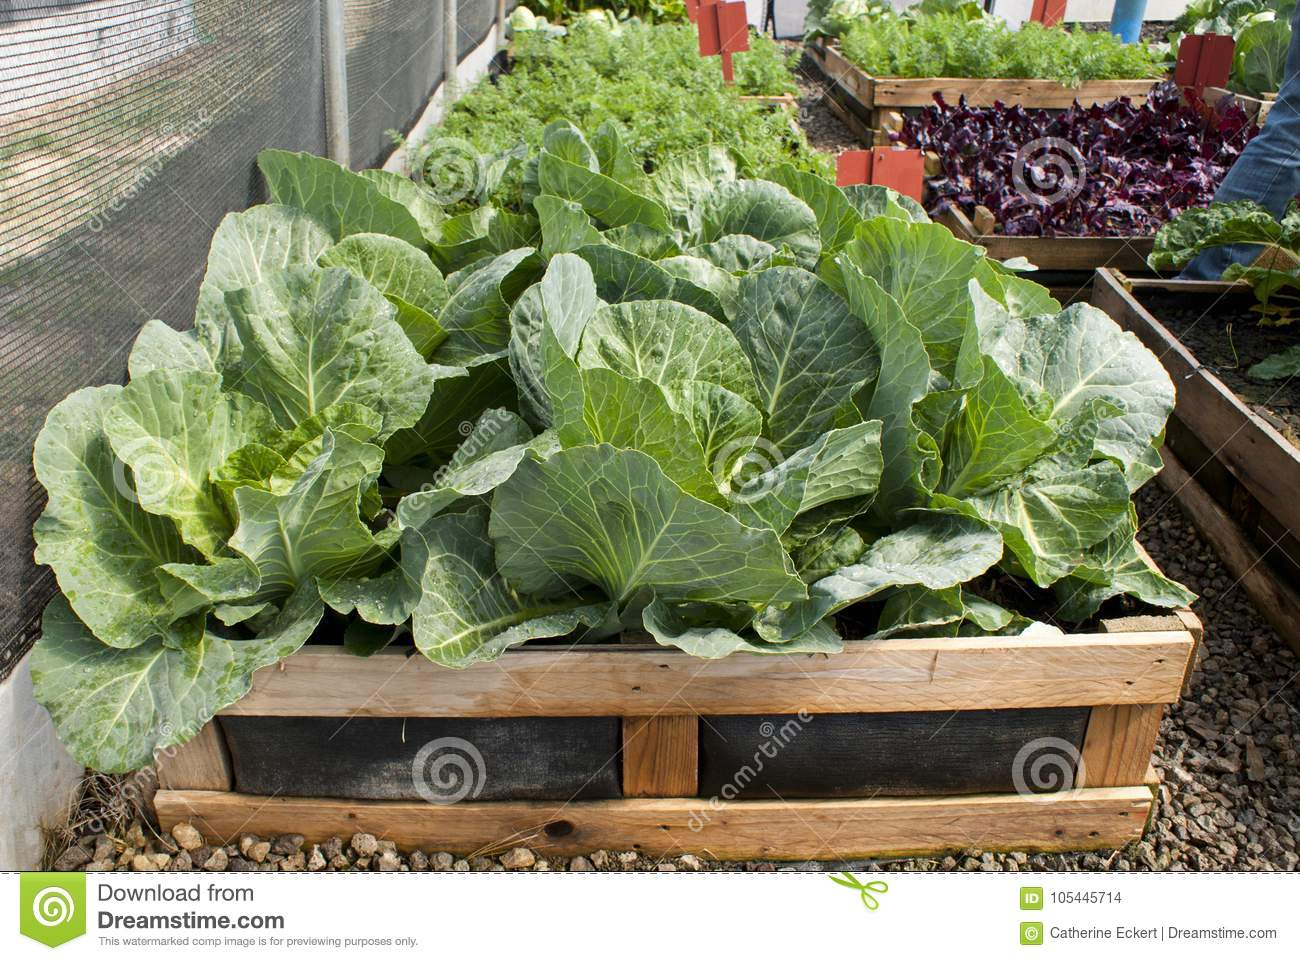 Picture of: Pallet Vegetable Garden With Cabbages Carrots And Beetroot Stock Photo Image Of Leaf Vegetarian 105445714